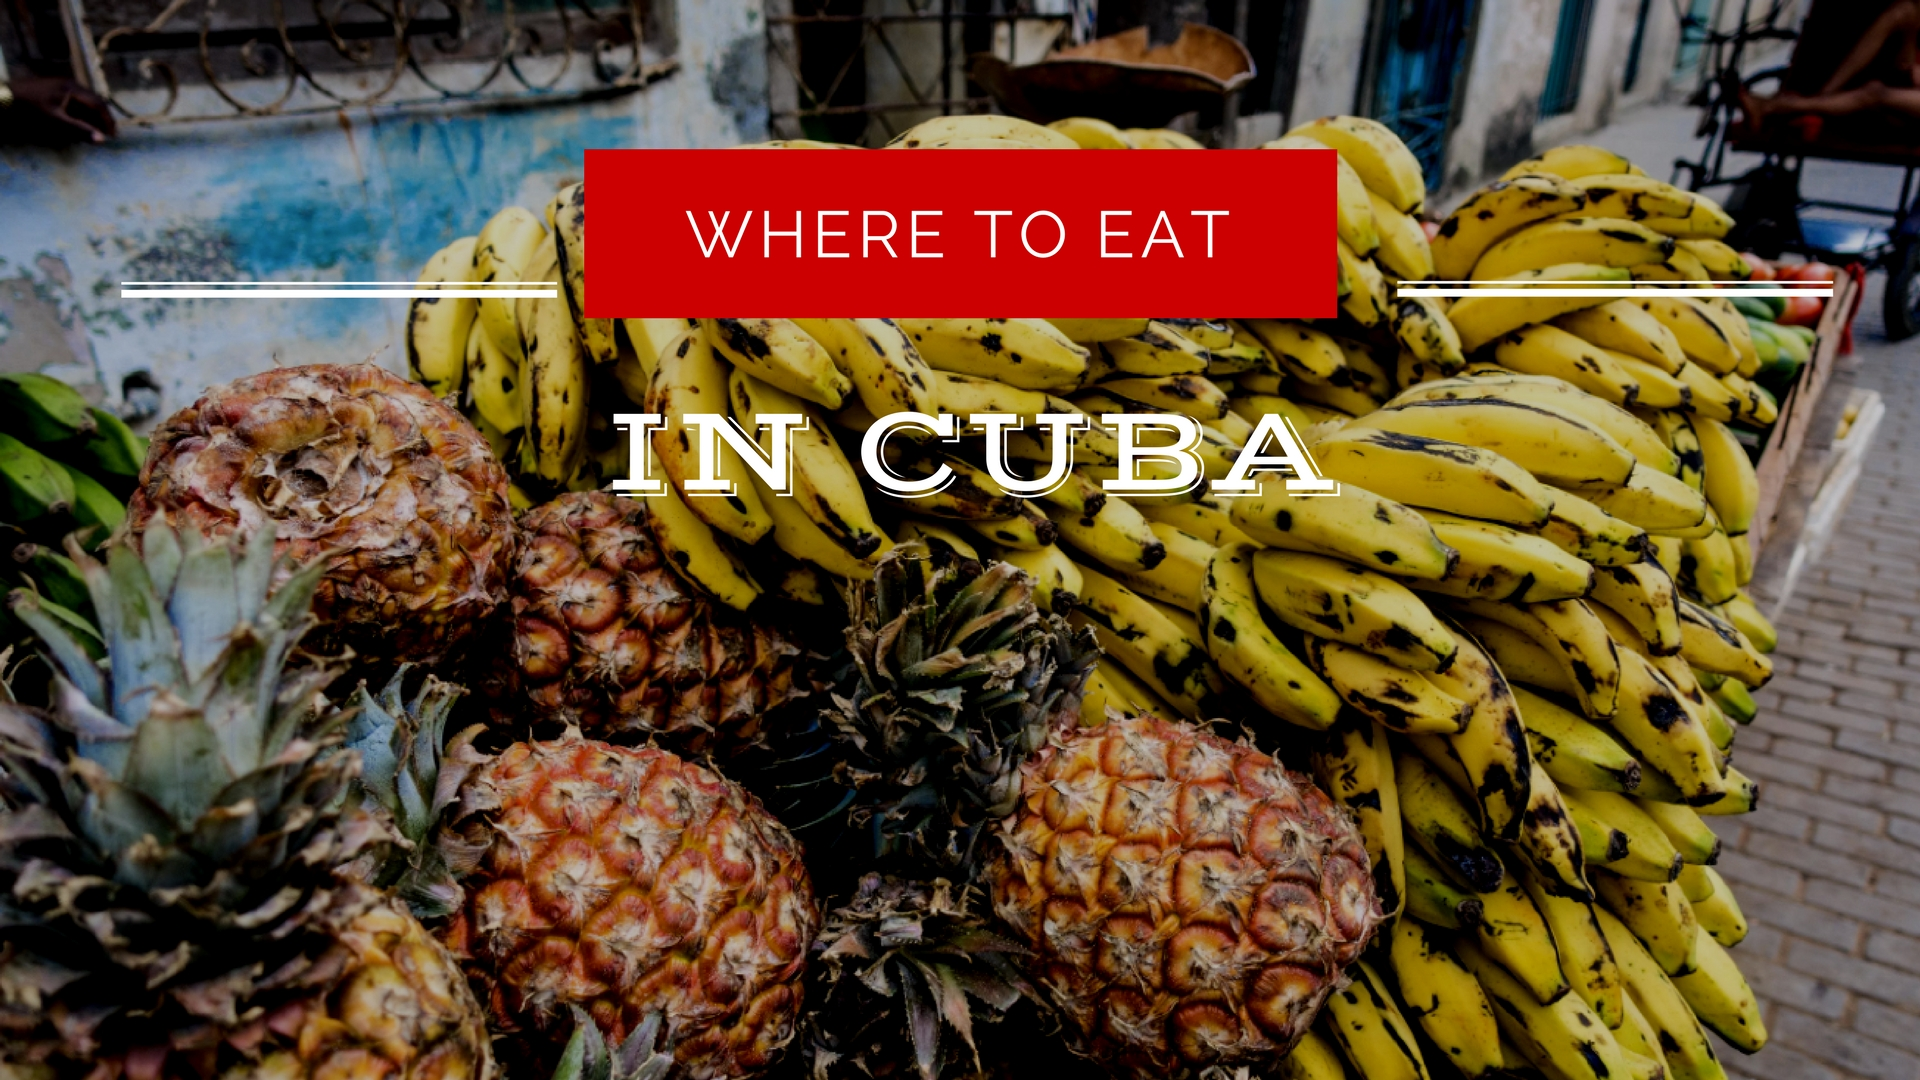 Where to Eat the Most Delicious Local Foods in Cuba